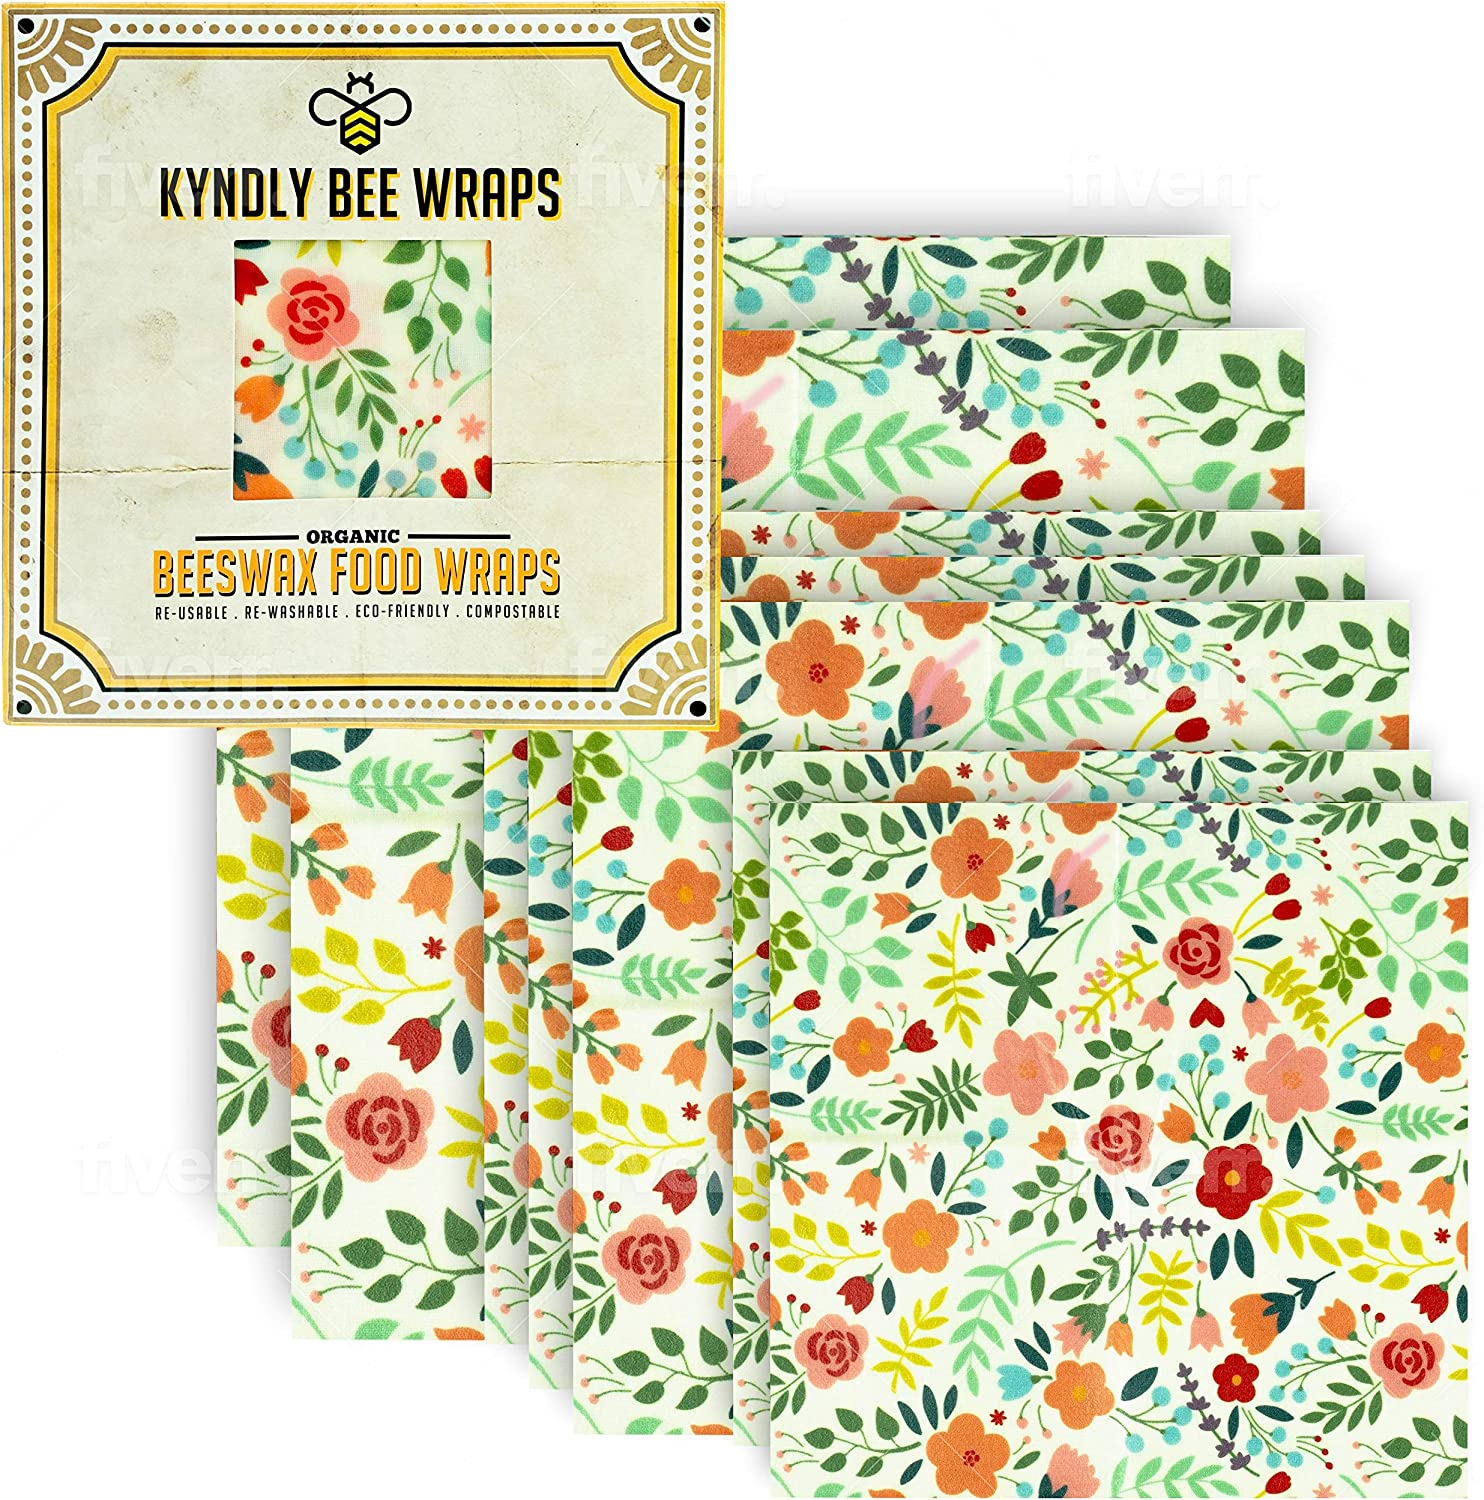 KYNDLY Beeswax Food Wrap, 7 Pack Eco-Friendly Reusable Wrappers. 100% Organic Cotton, Non Toxic, All Natural Food Grade Storage. Sustainable, Compostable and Biodegradable. 2xS 3xM 2xL (CLASSIC)